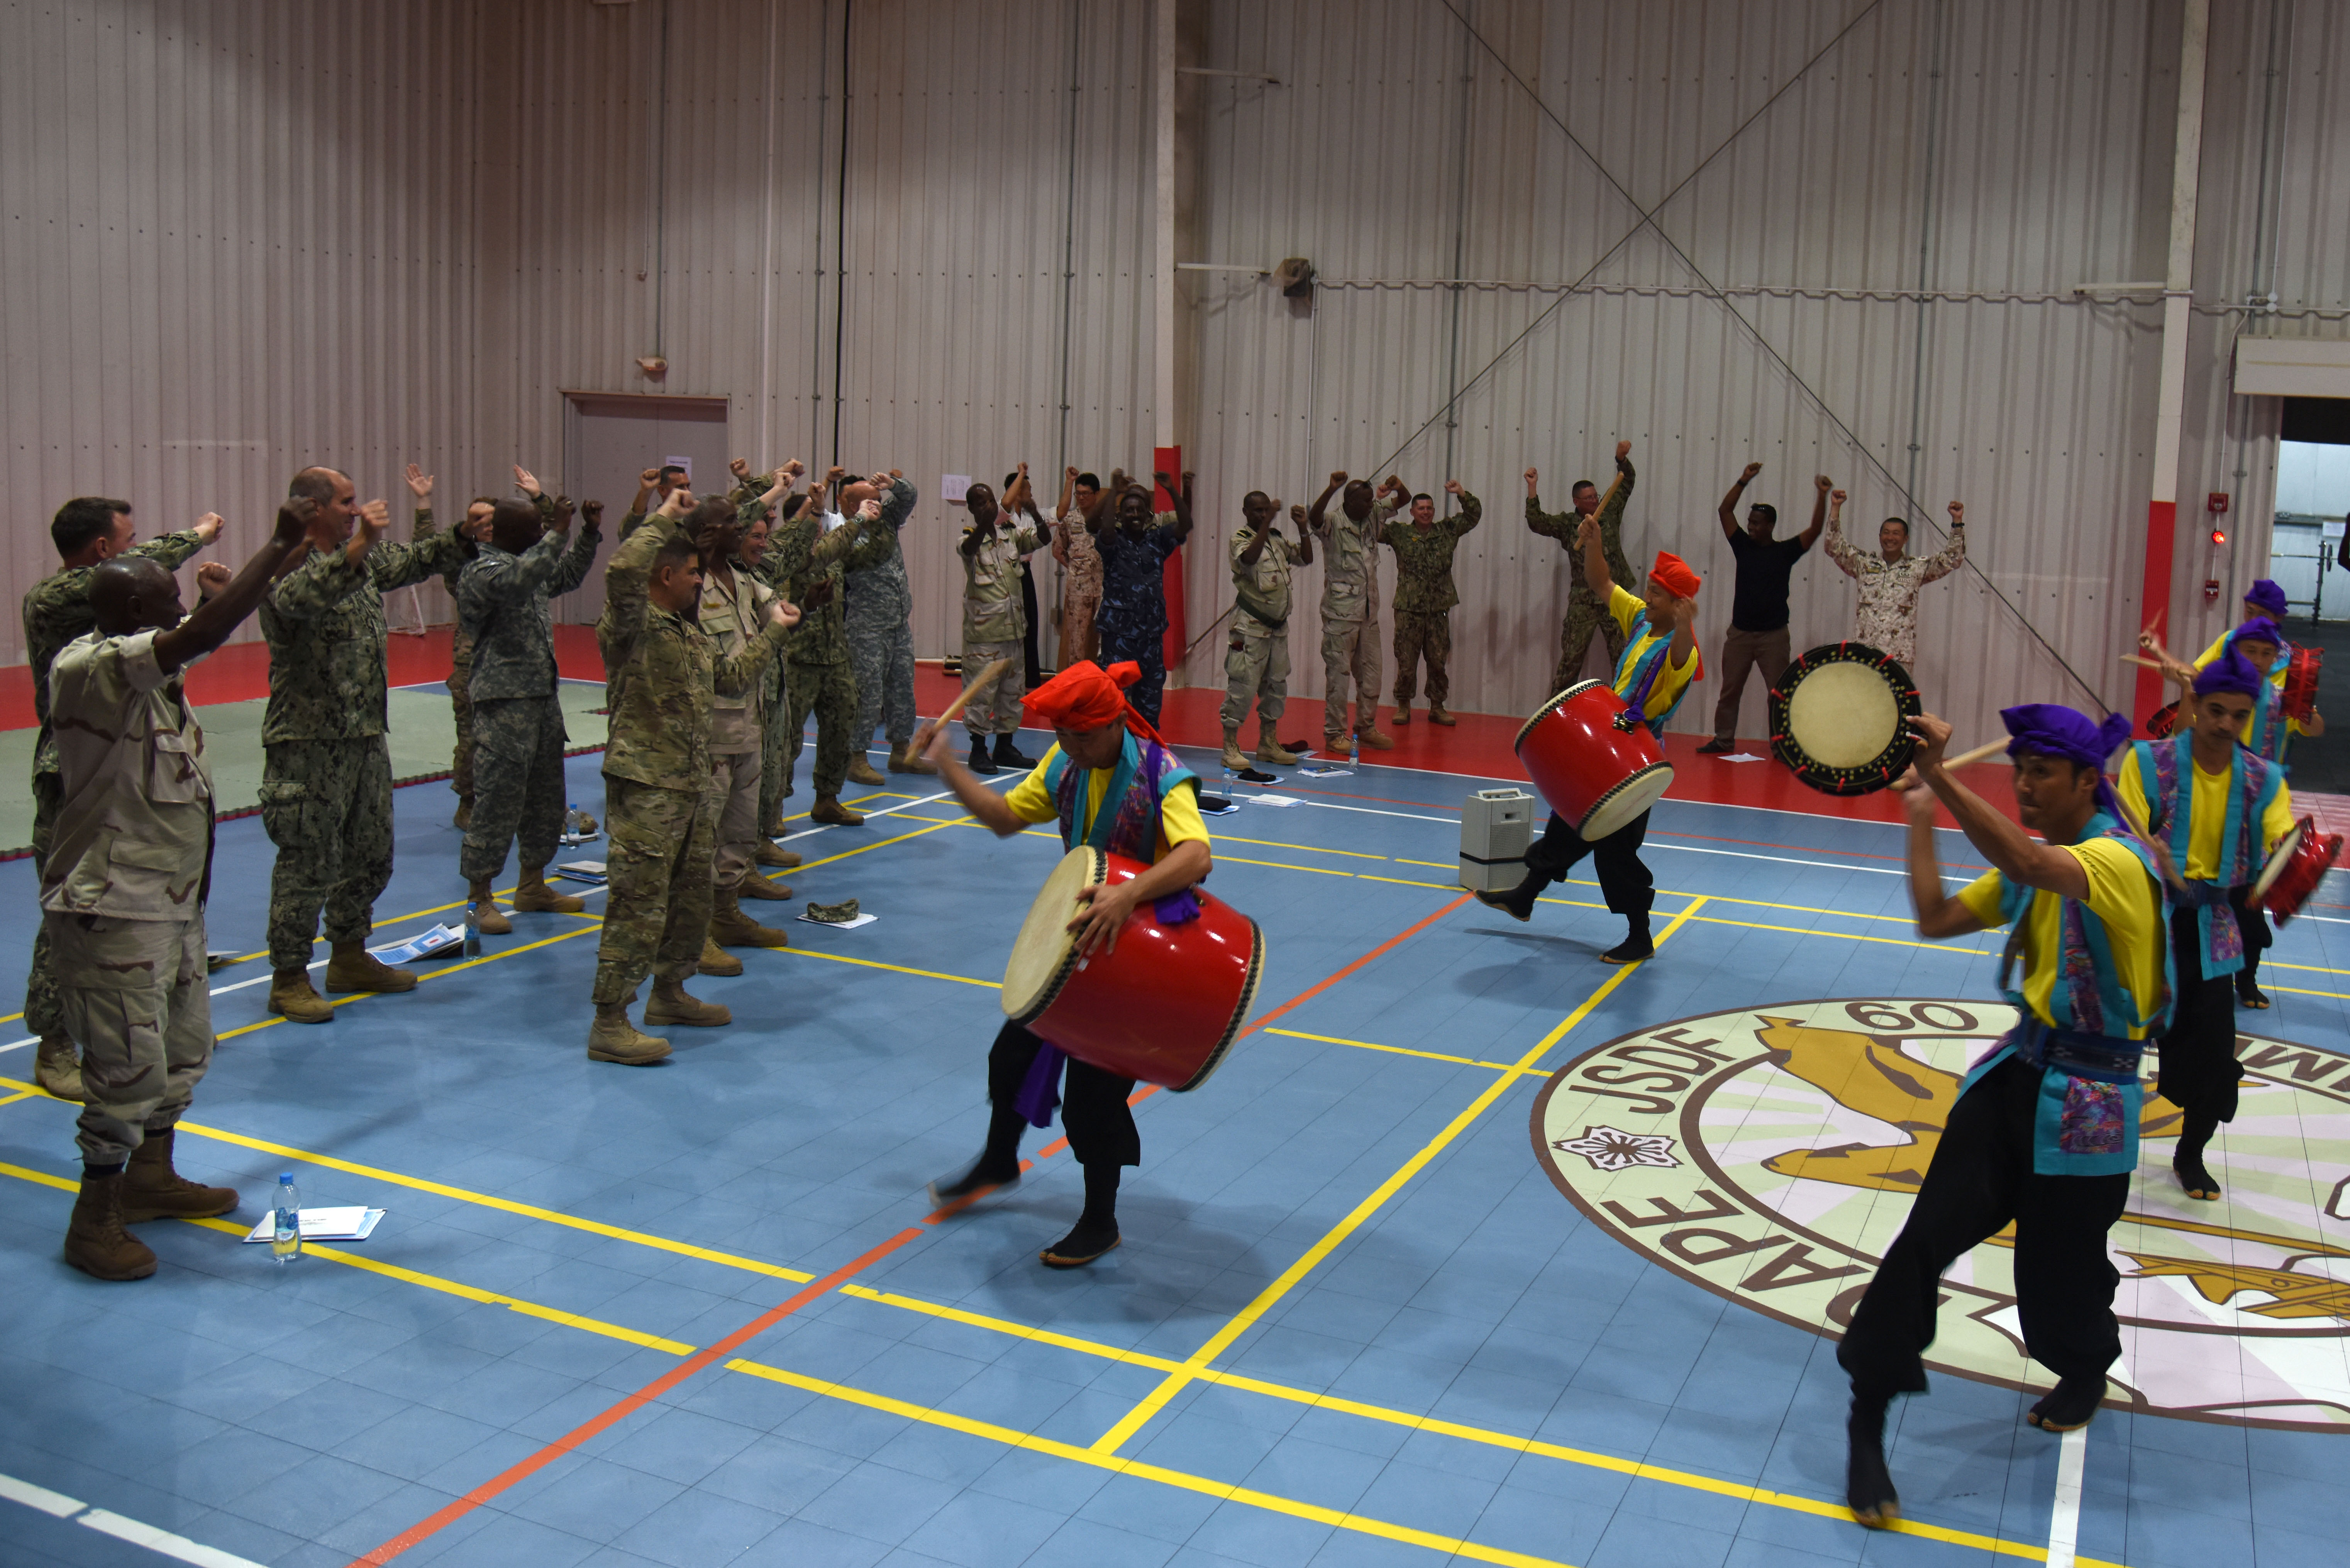 Senior enlisted members from Japan, Djibouti and the U.S. join in a traditional Eisa dance during the Joint Forces Senior Enlisted Professional Development Course at the Japan base in Djibouti, Nov. 24, 2015. Eisa is a traditional dance, unique to Okinawa, the southernmost prefecture of Japan, which is performed during seasonal festivals to honor and thank their ancestors. (U.S. Air Force photo by Staff Sgt. Victoria Sneed)